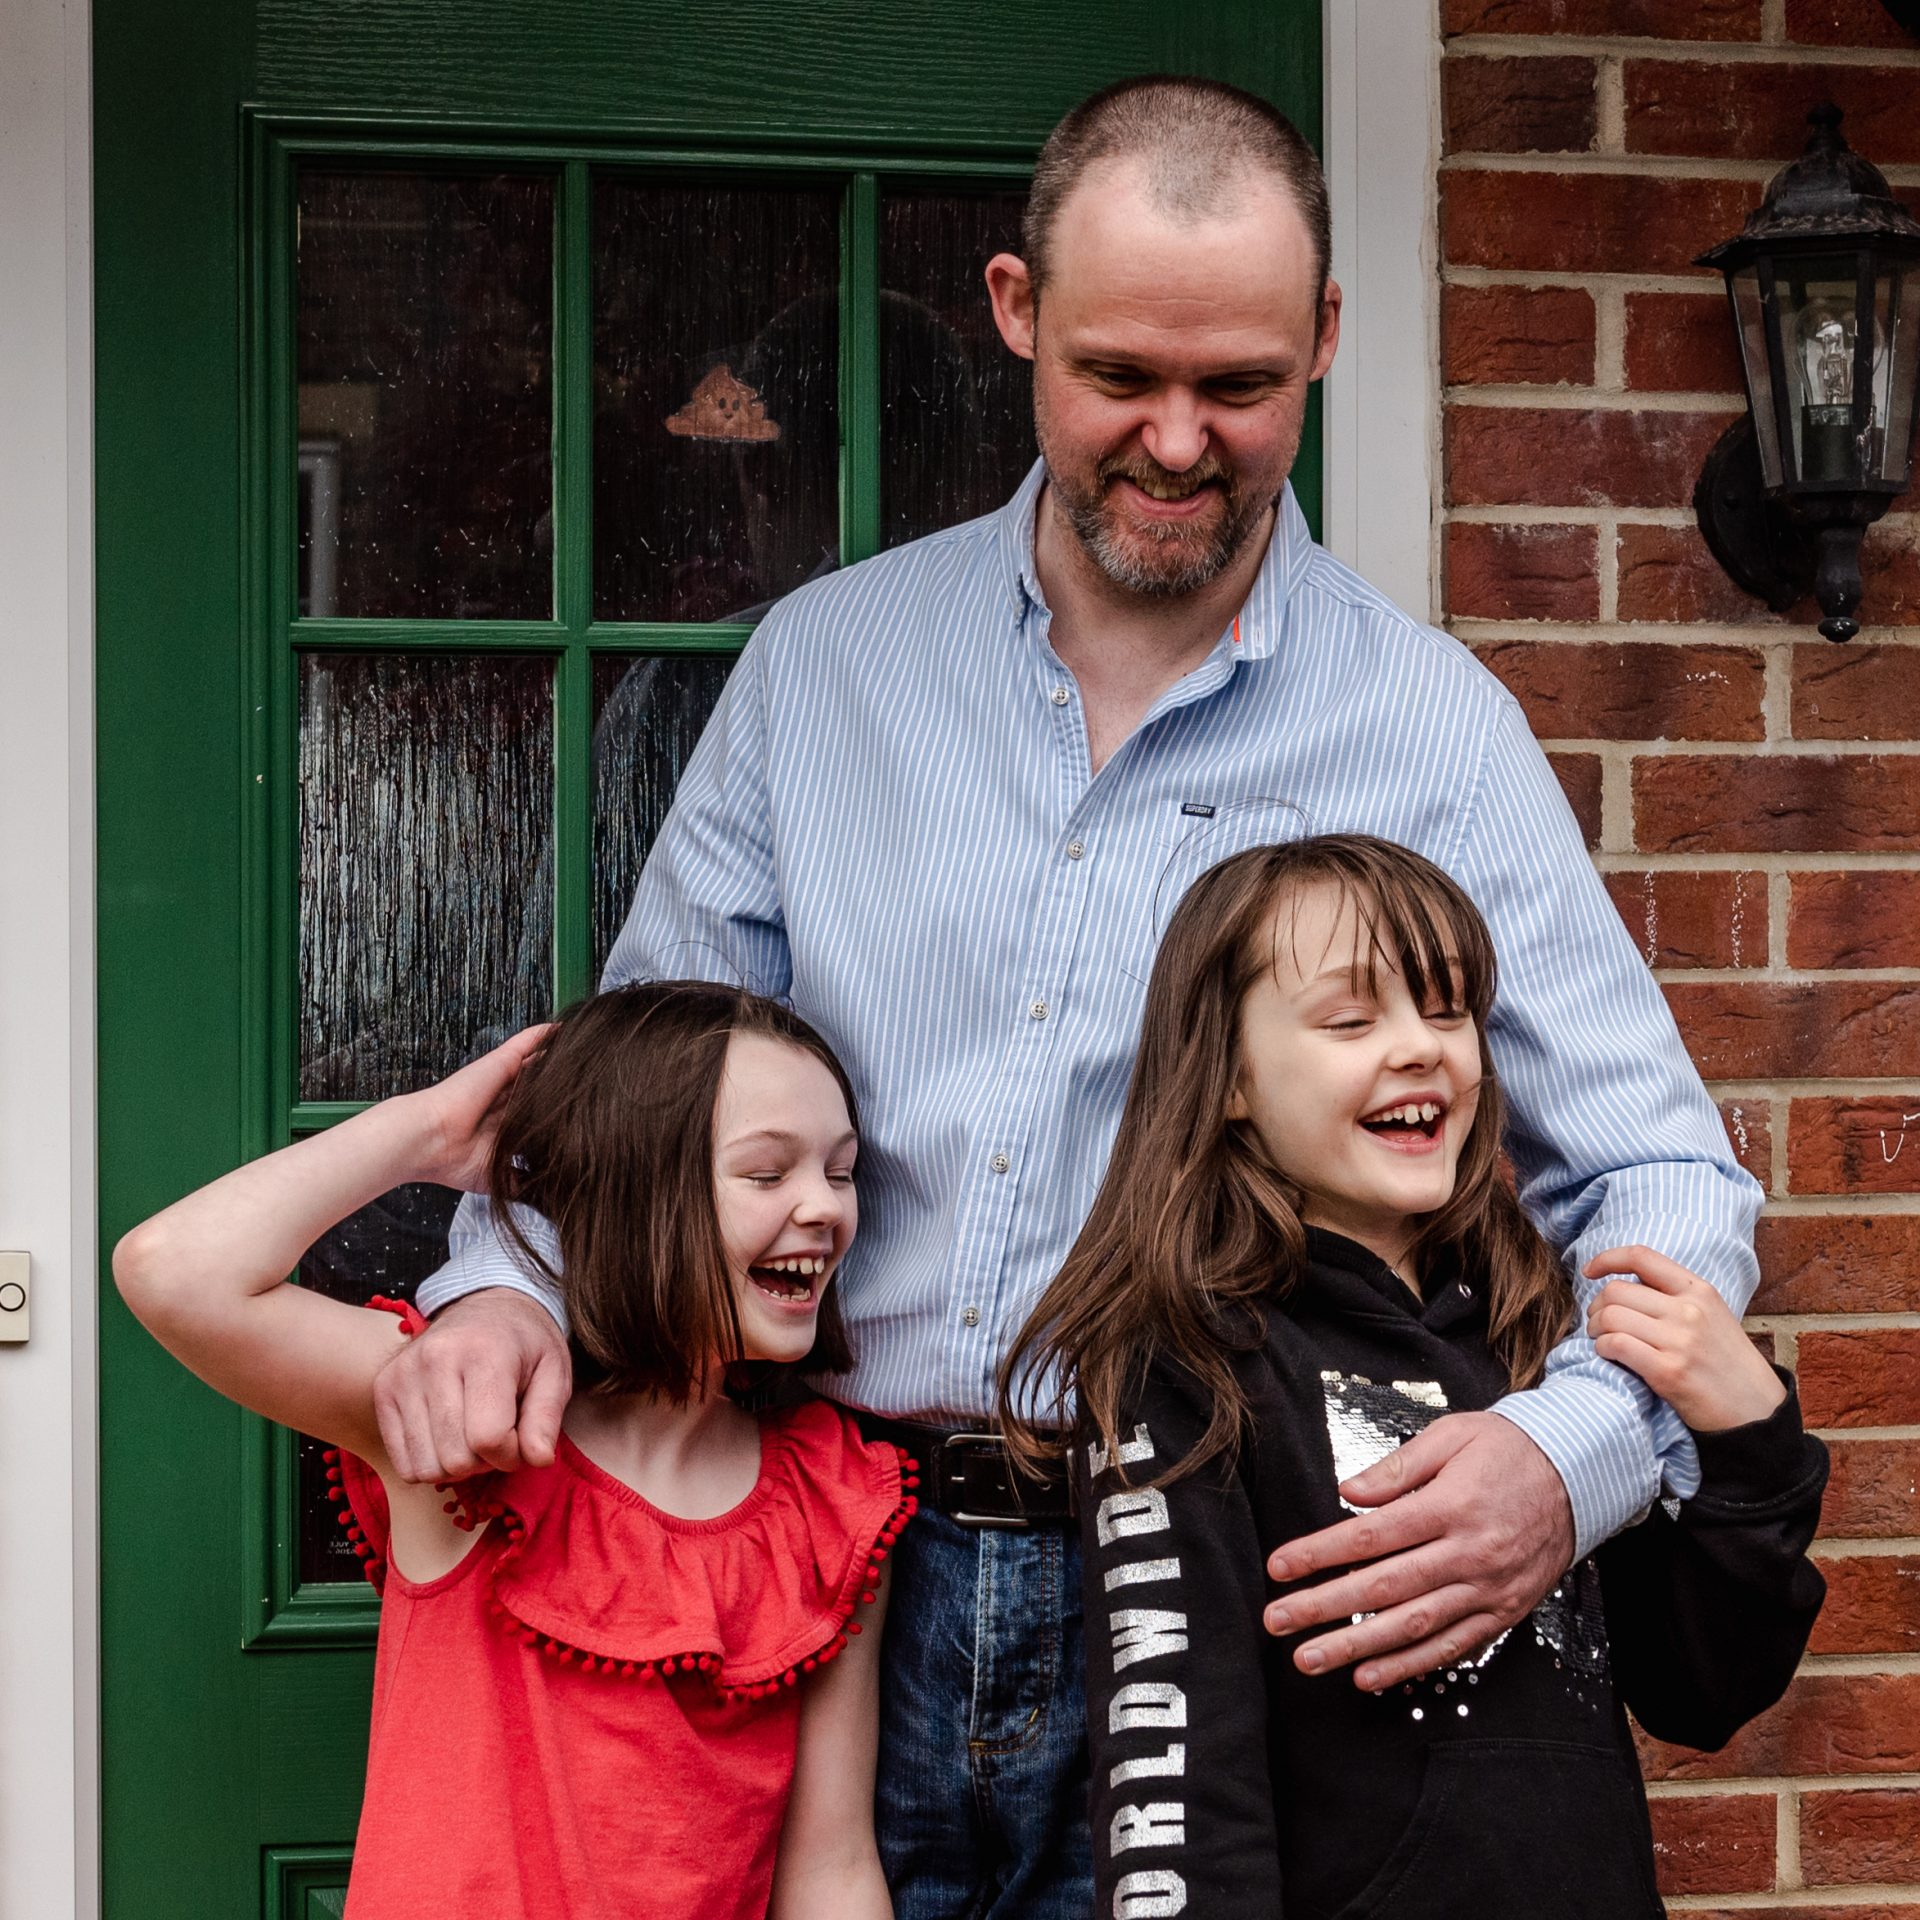 father and two daughters laughing on doorstep